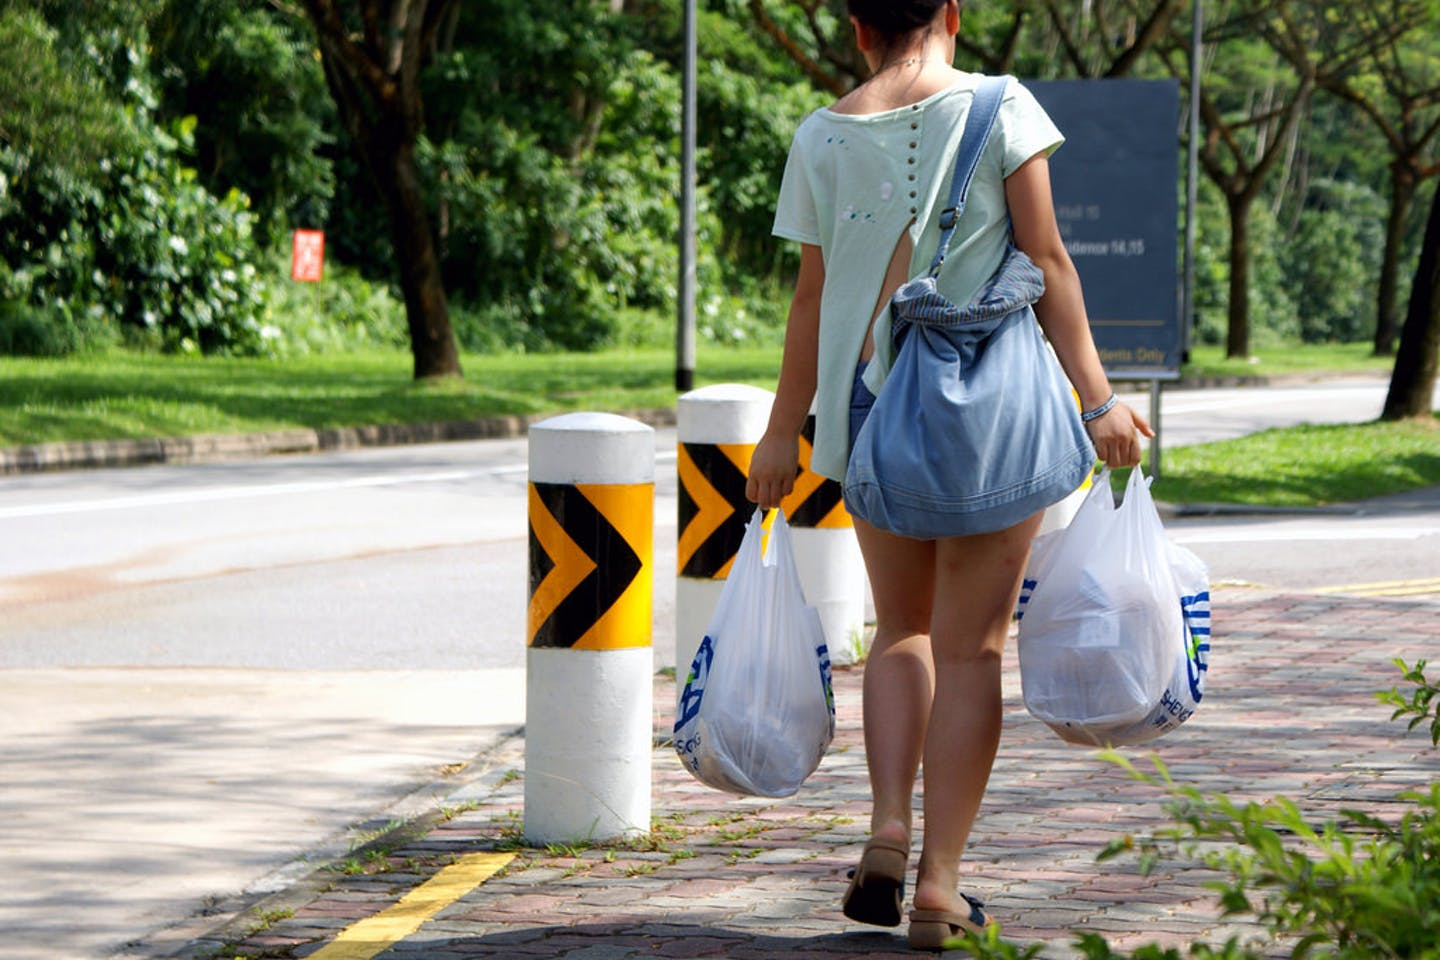 lady in singapore carrying plastic bags